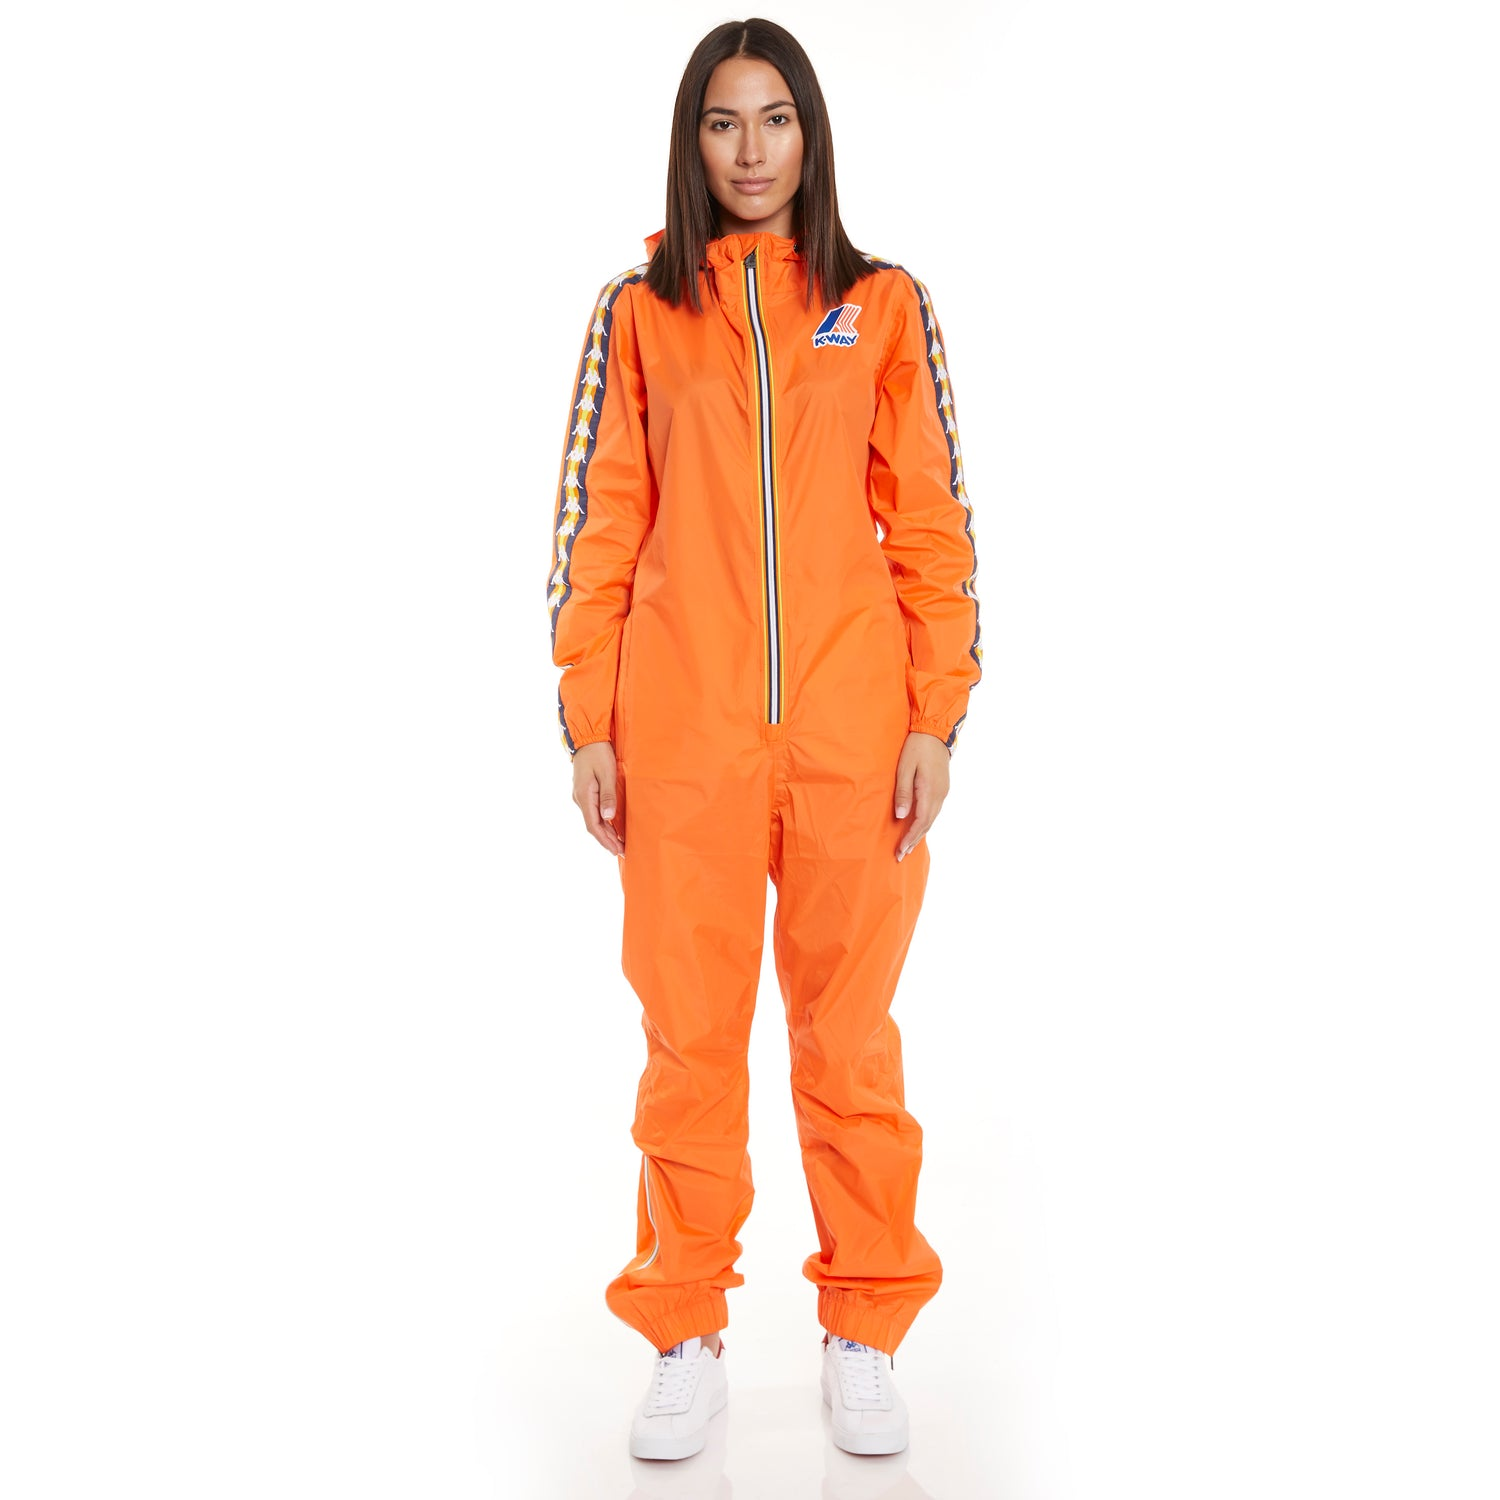 Women's K-Way X Kappa Le Vrai 3.0 Pierrik Banda Orange Flame